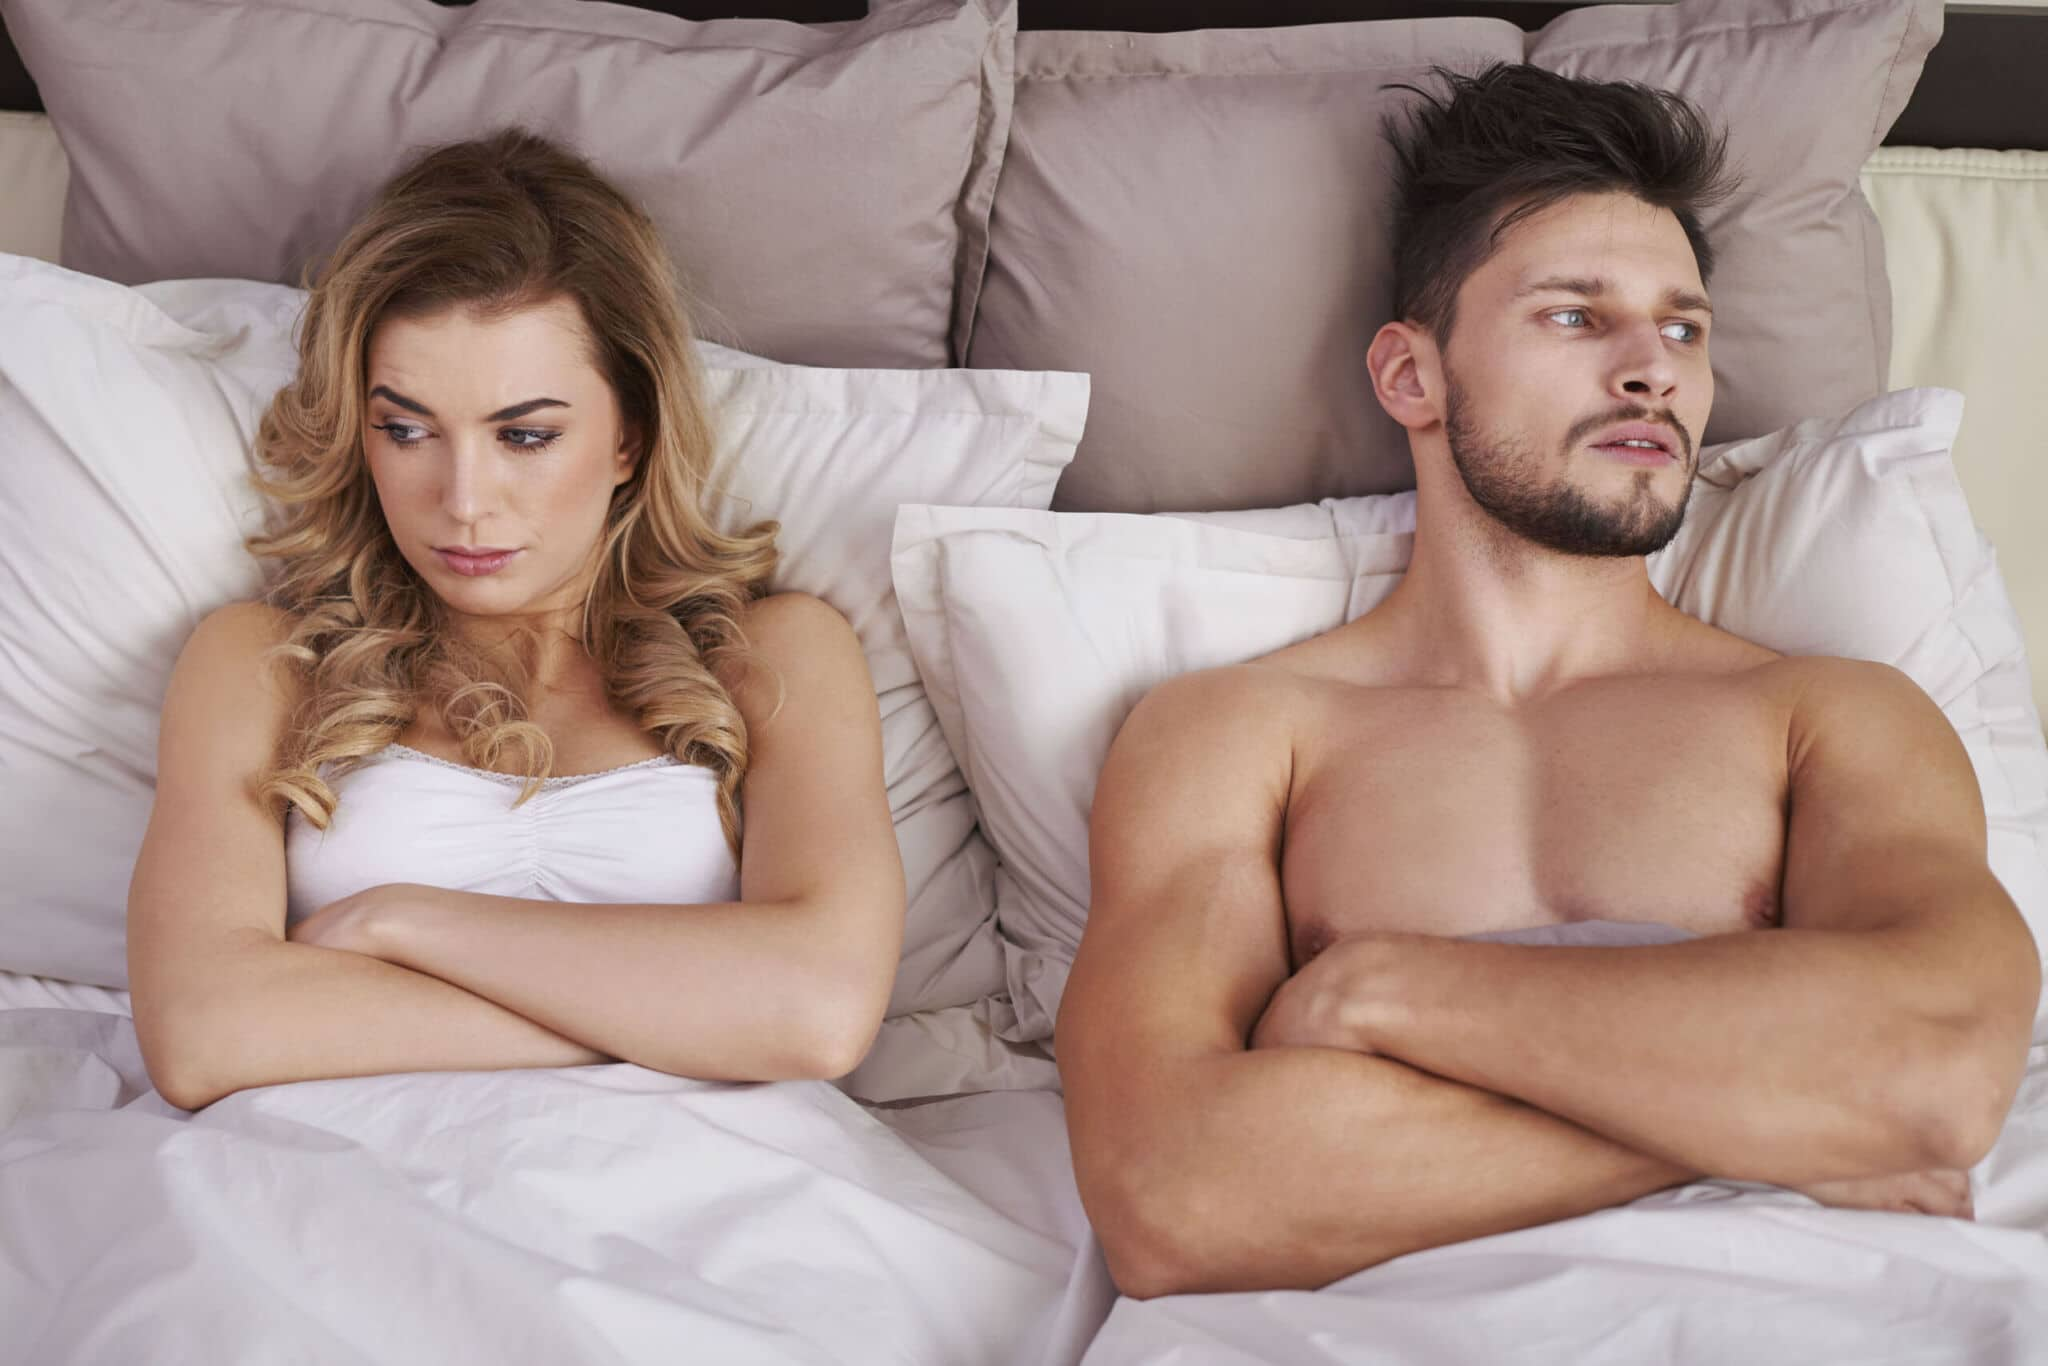 Men's 4 Most Common Questions About Sex